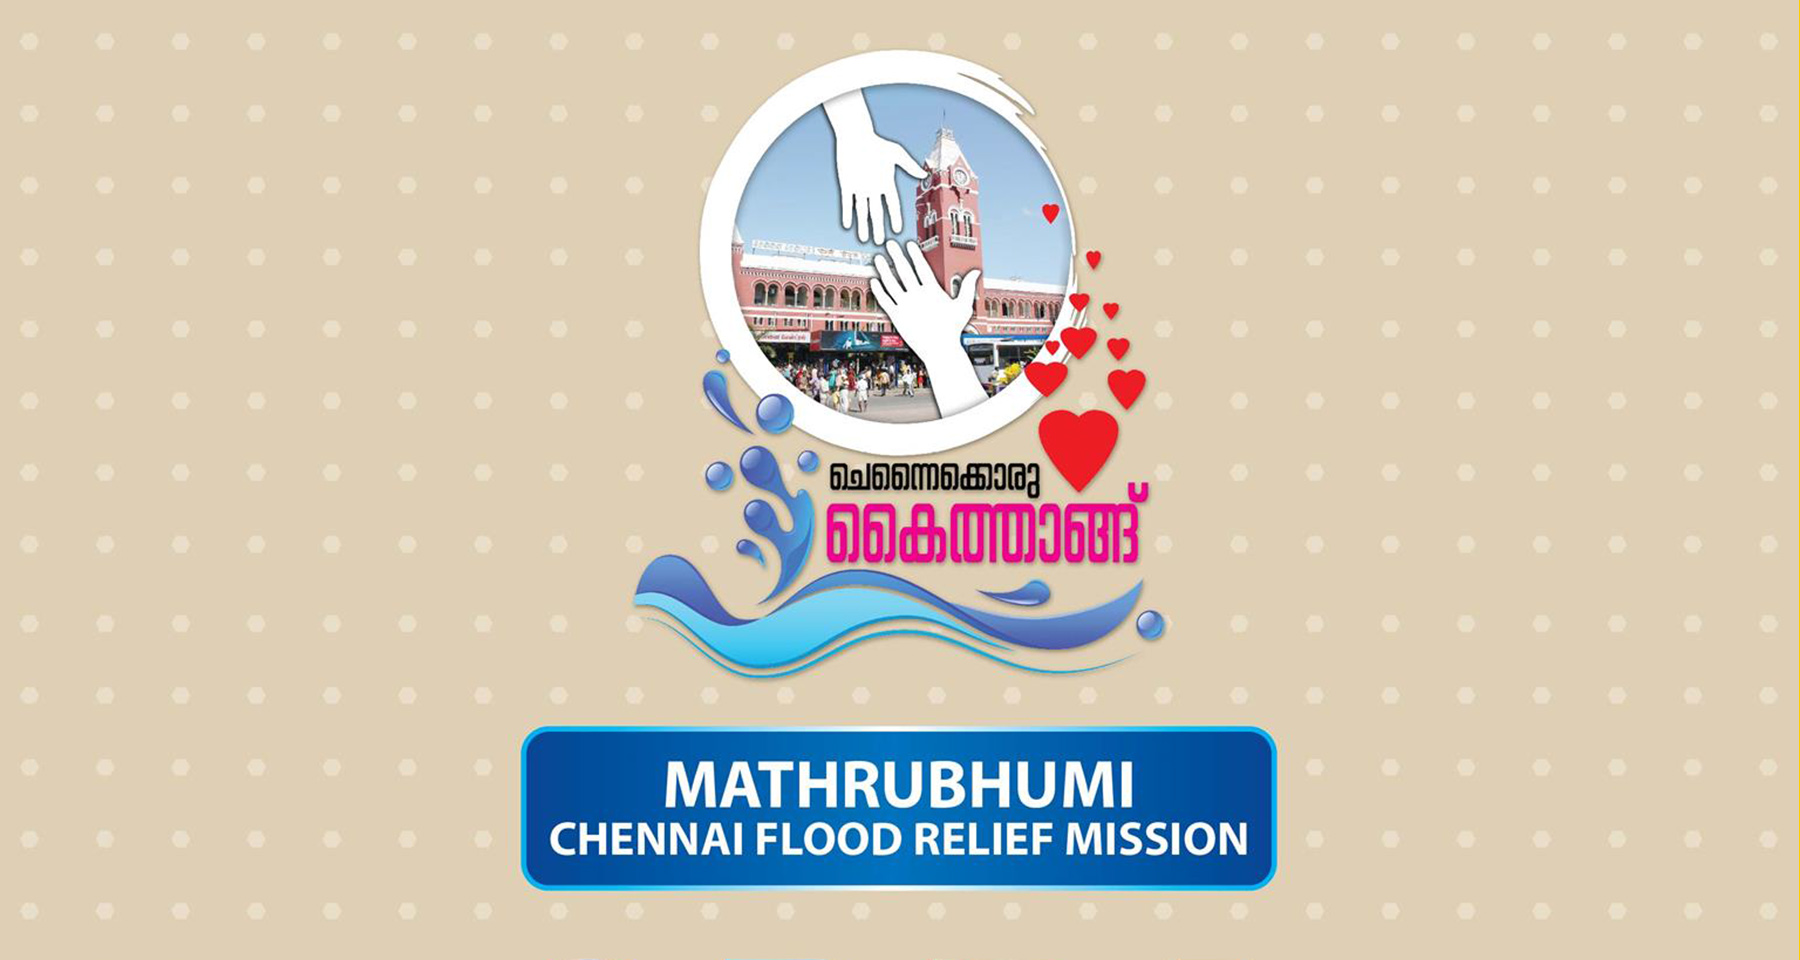 Mathrubhumi Printing & Publishing brings community together to aid flood victims